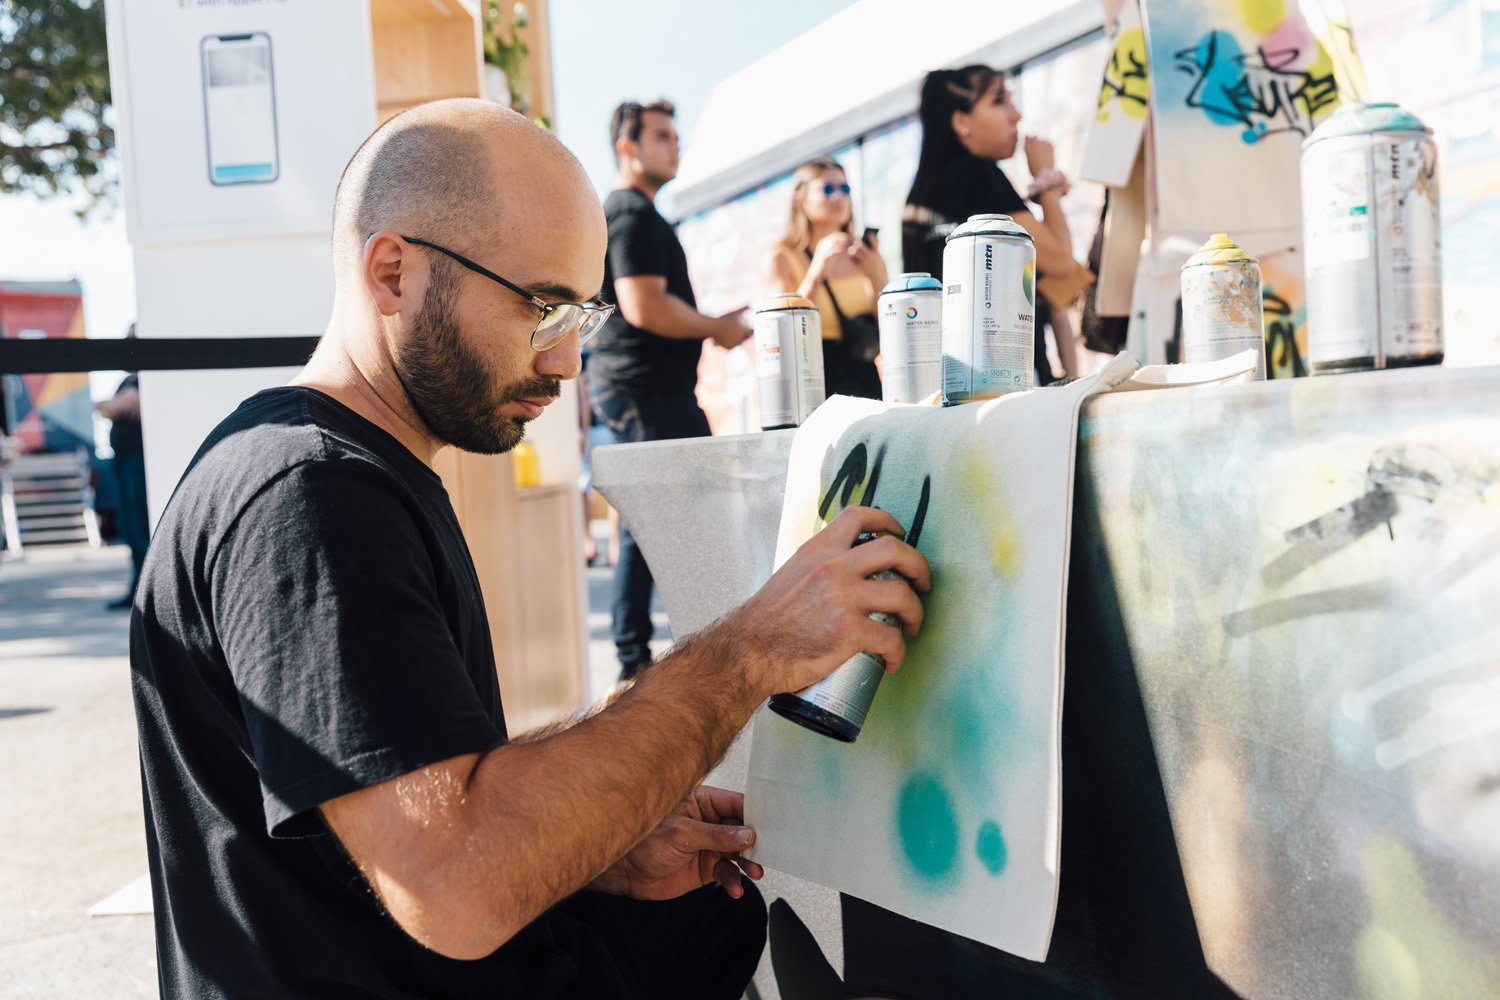 Miami Live Art - Apple Pay 2019